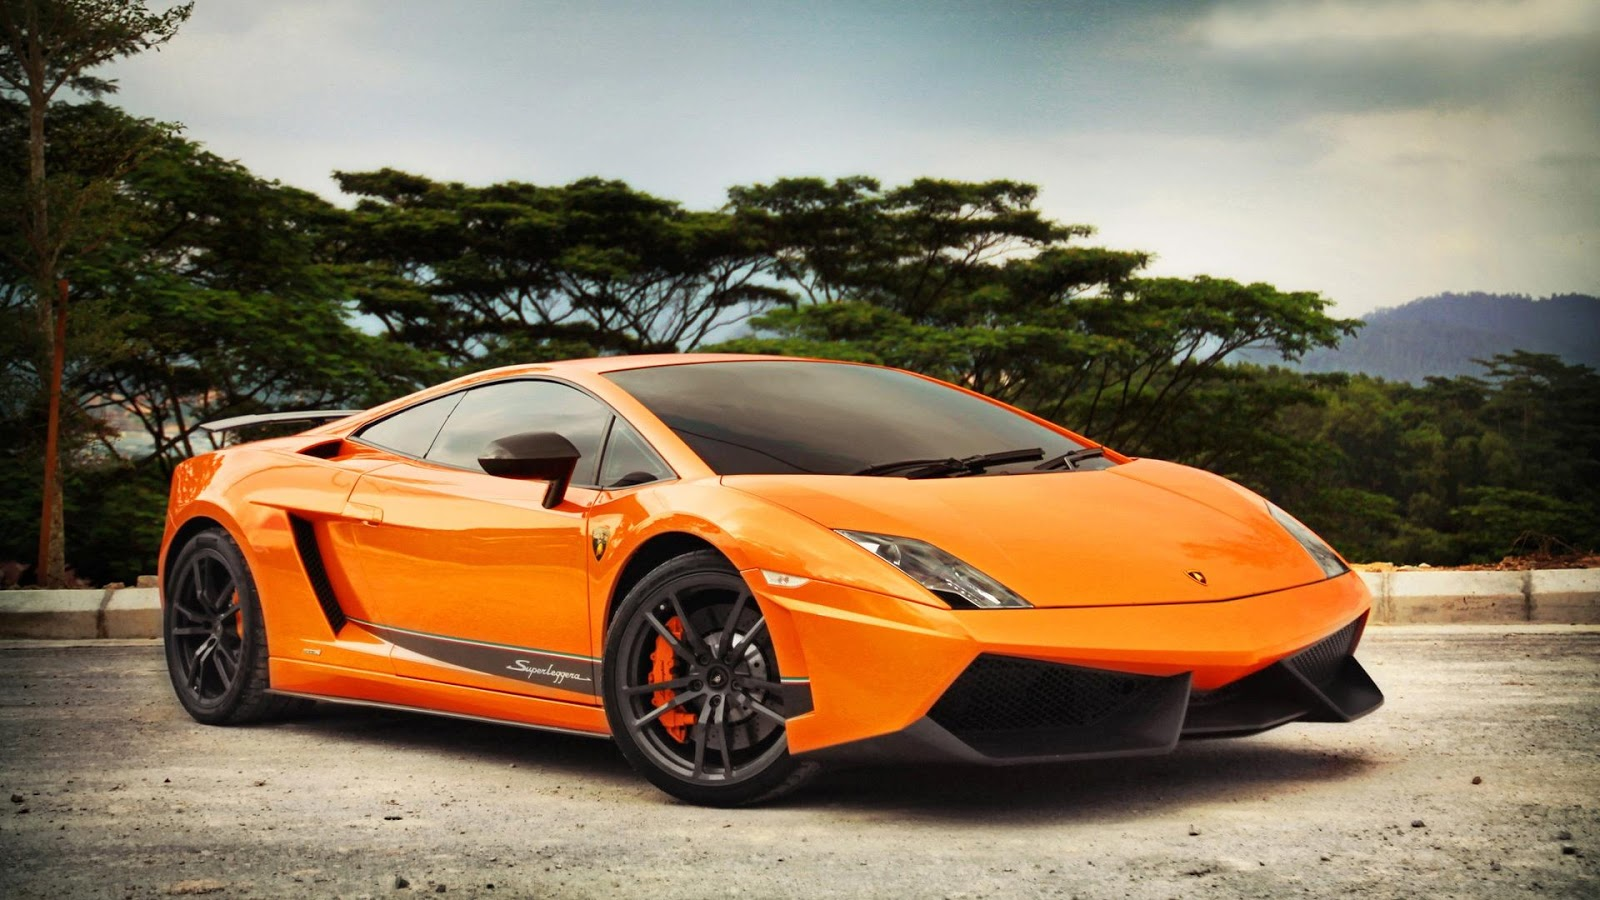 Cars image, Cars photo hd, Cars background, Cars desktop pc wallpaper ...